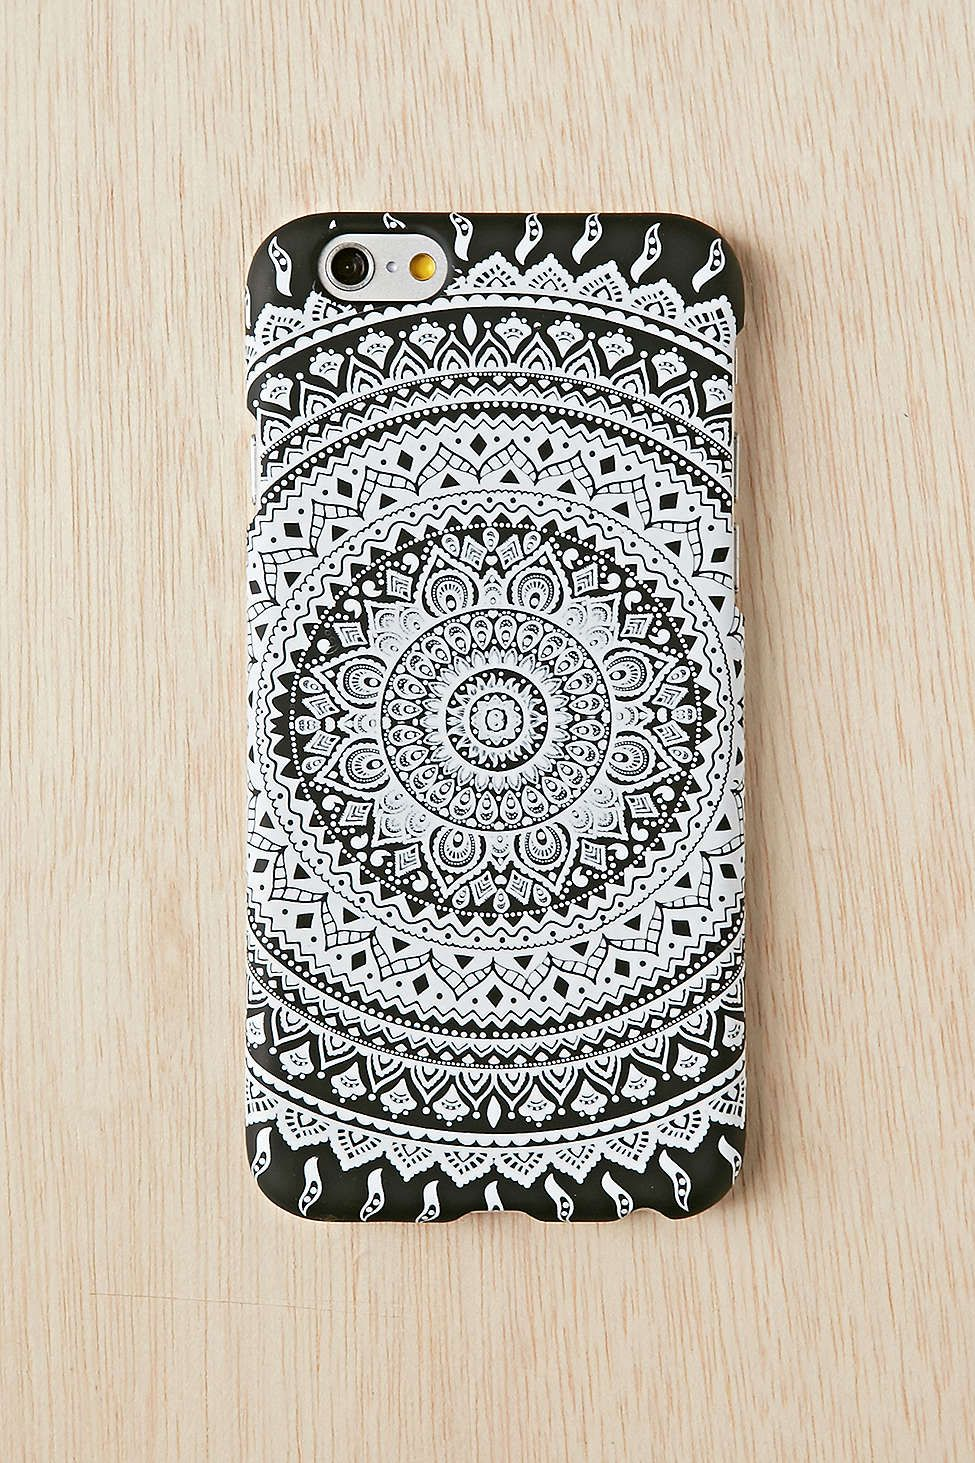 Medium Of Custom Iphone 6 Case